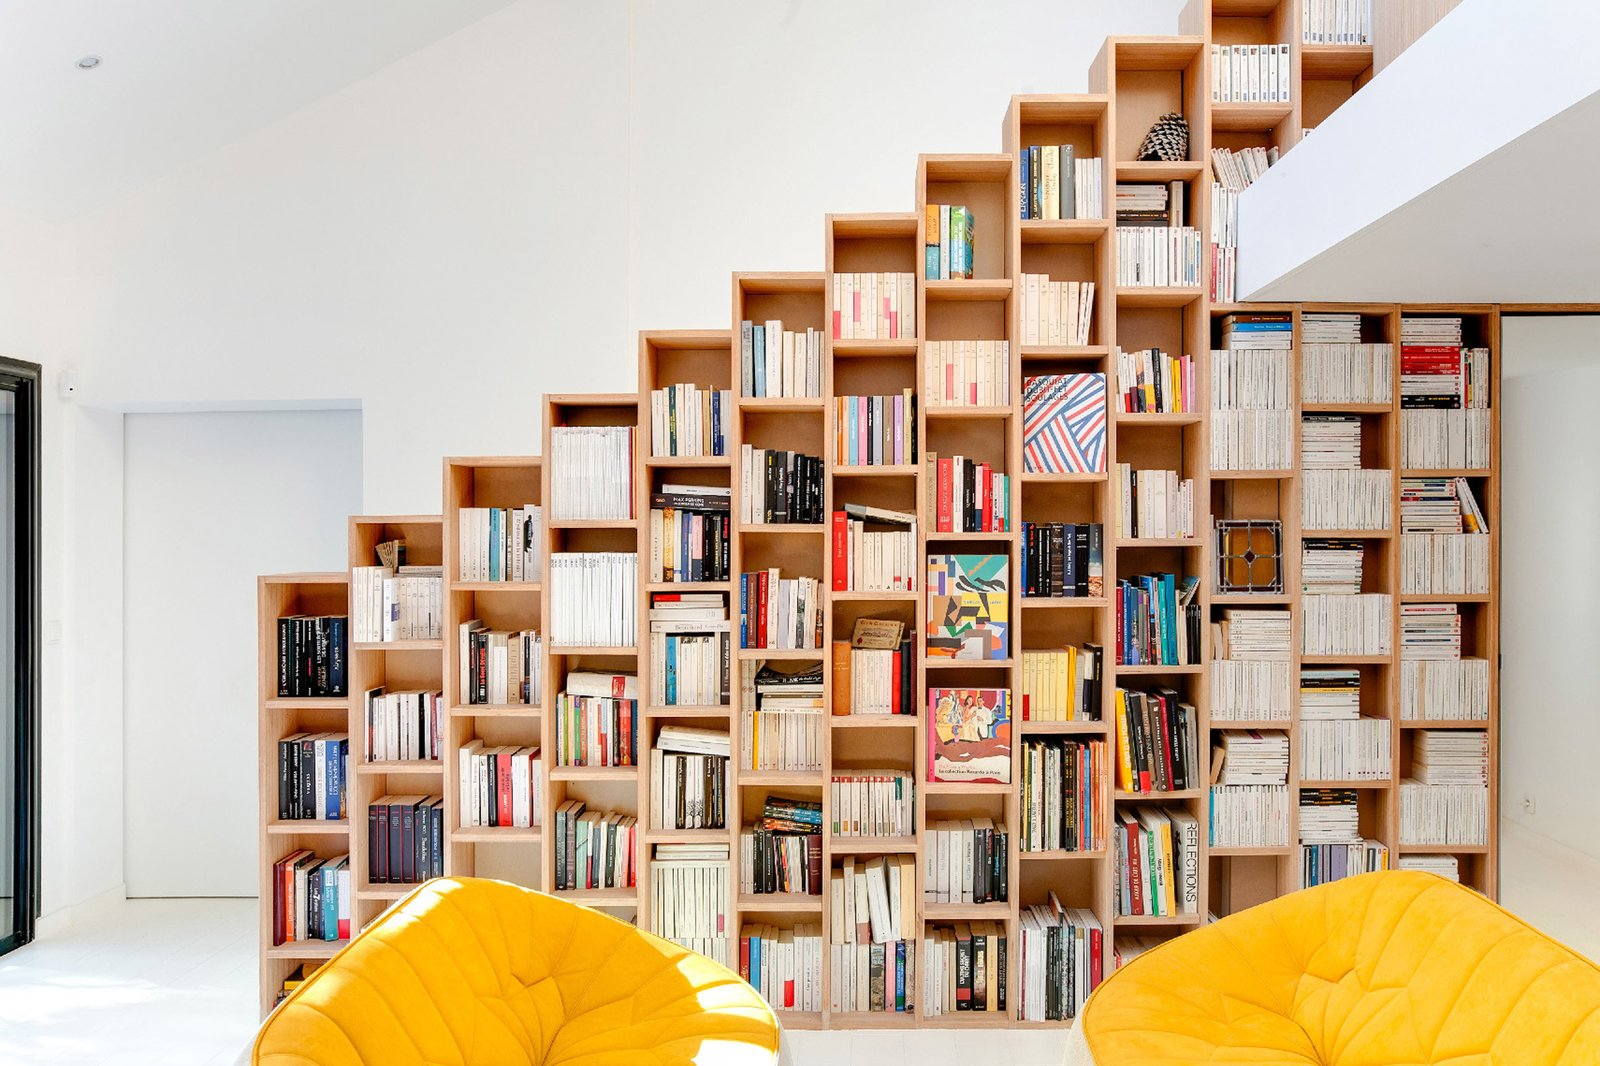 10 Ways to Solve Storage Problems in Small Spaces